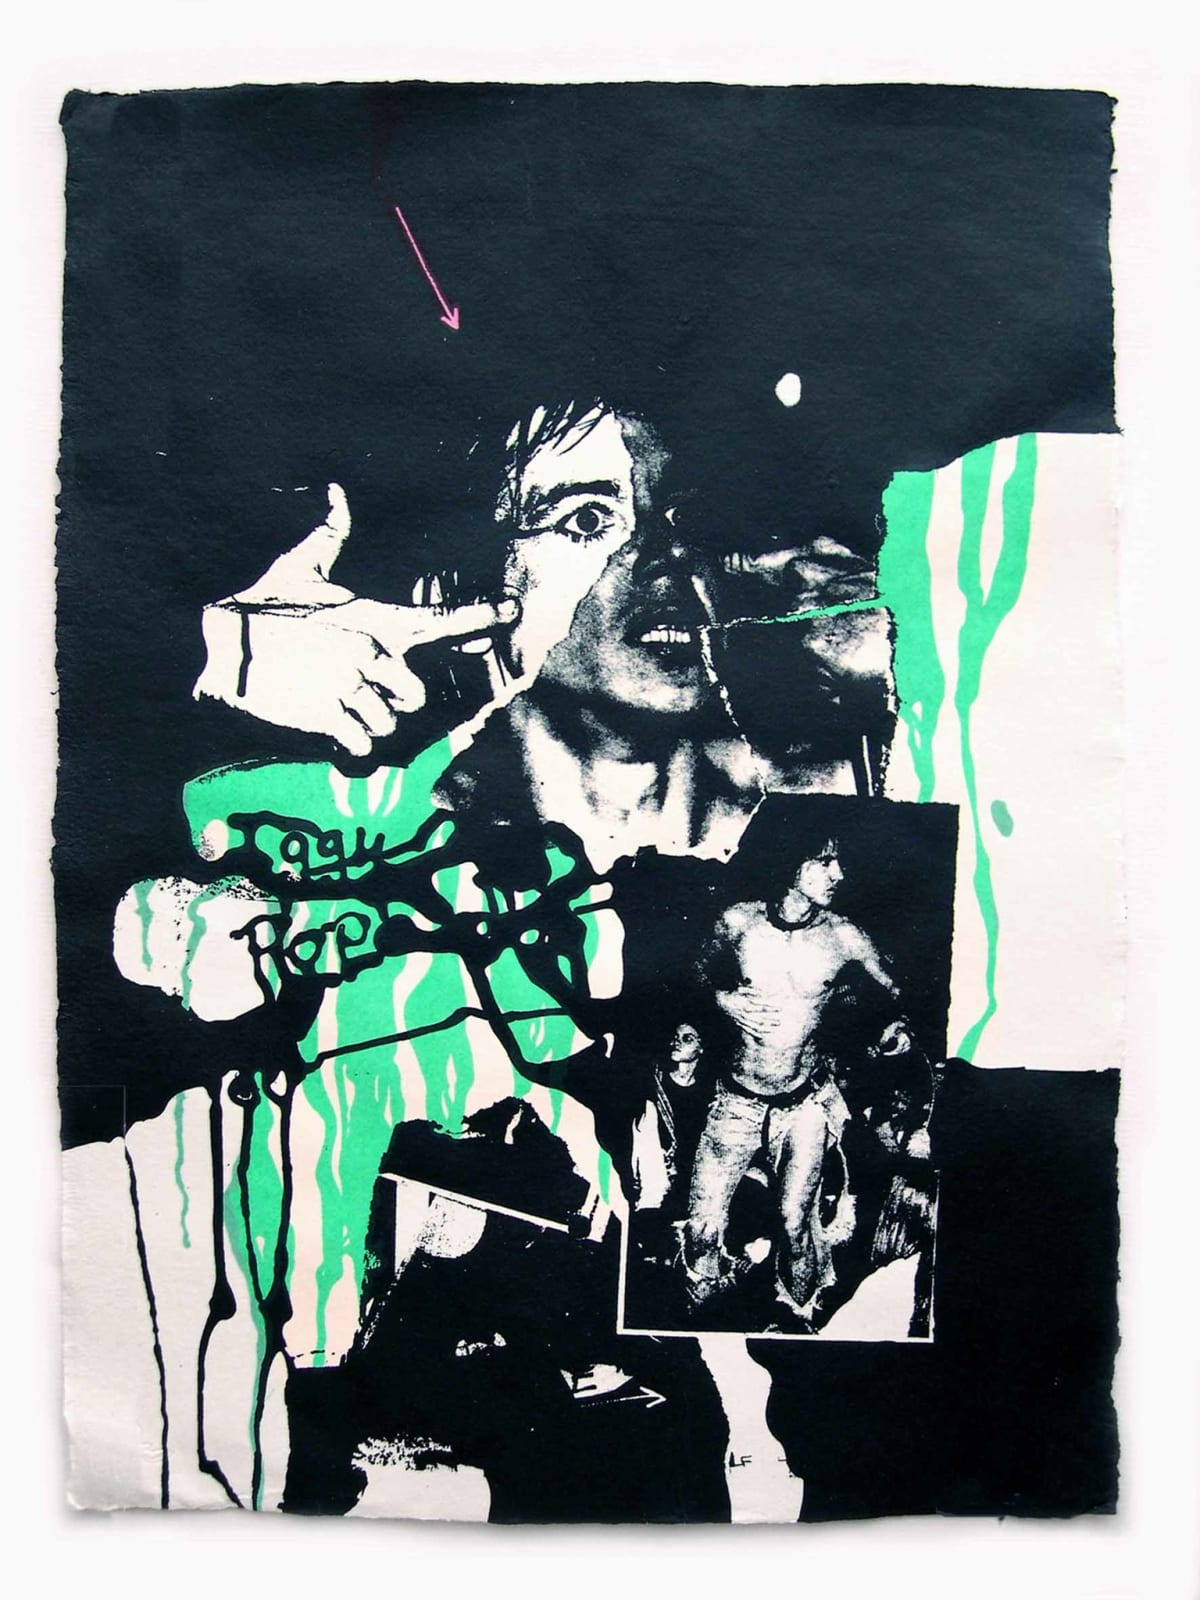 John Dove and and Molly White Iggy Pop (Rebel No.7), 2008 Screen print on hand-made rag paper, made from recycled T-Shirts. signed and numbered. Edition of 24. 76 x 56 cm 29.9 x 22 in Edition of 24 plus 1 artist's proof